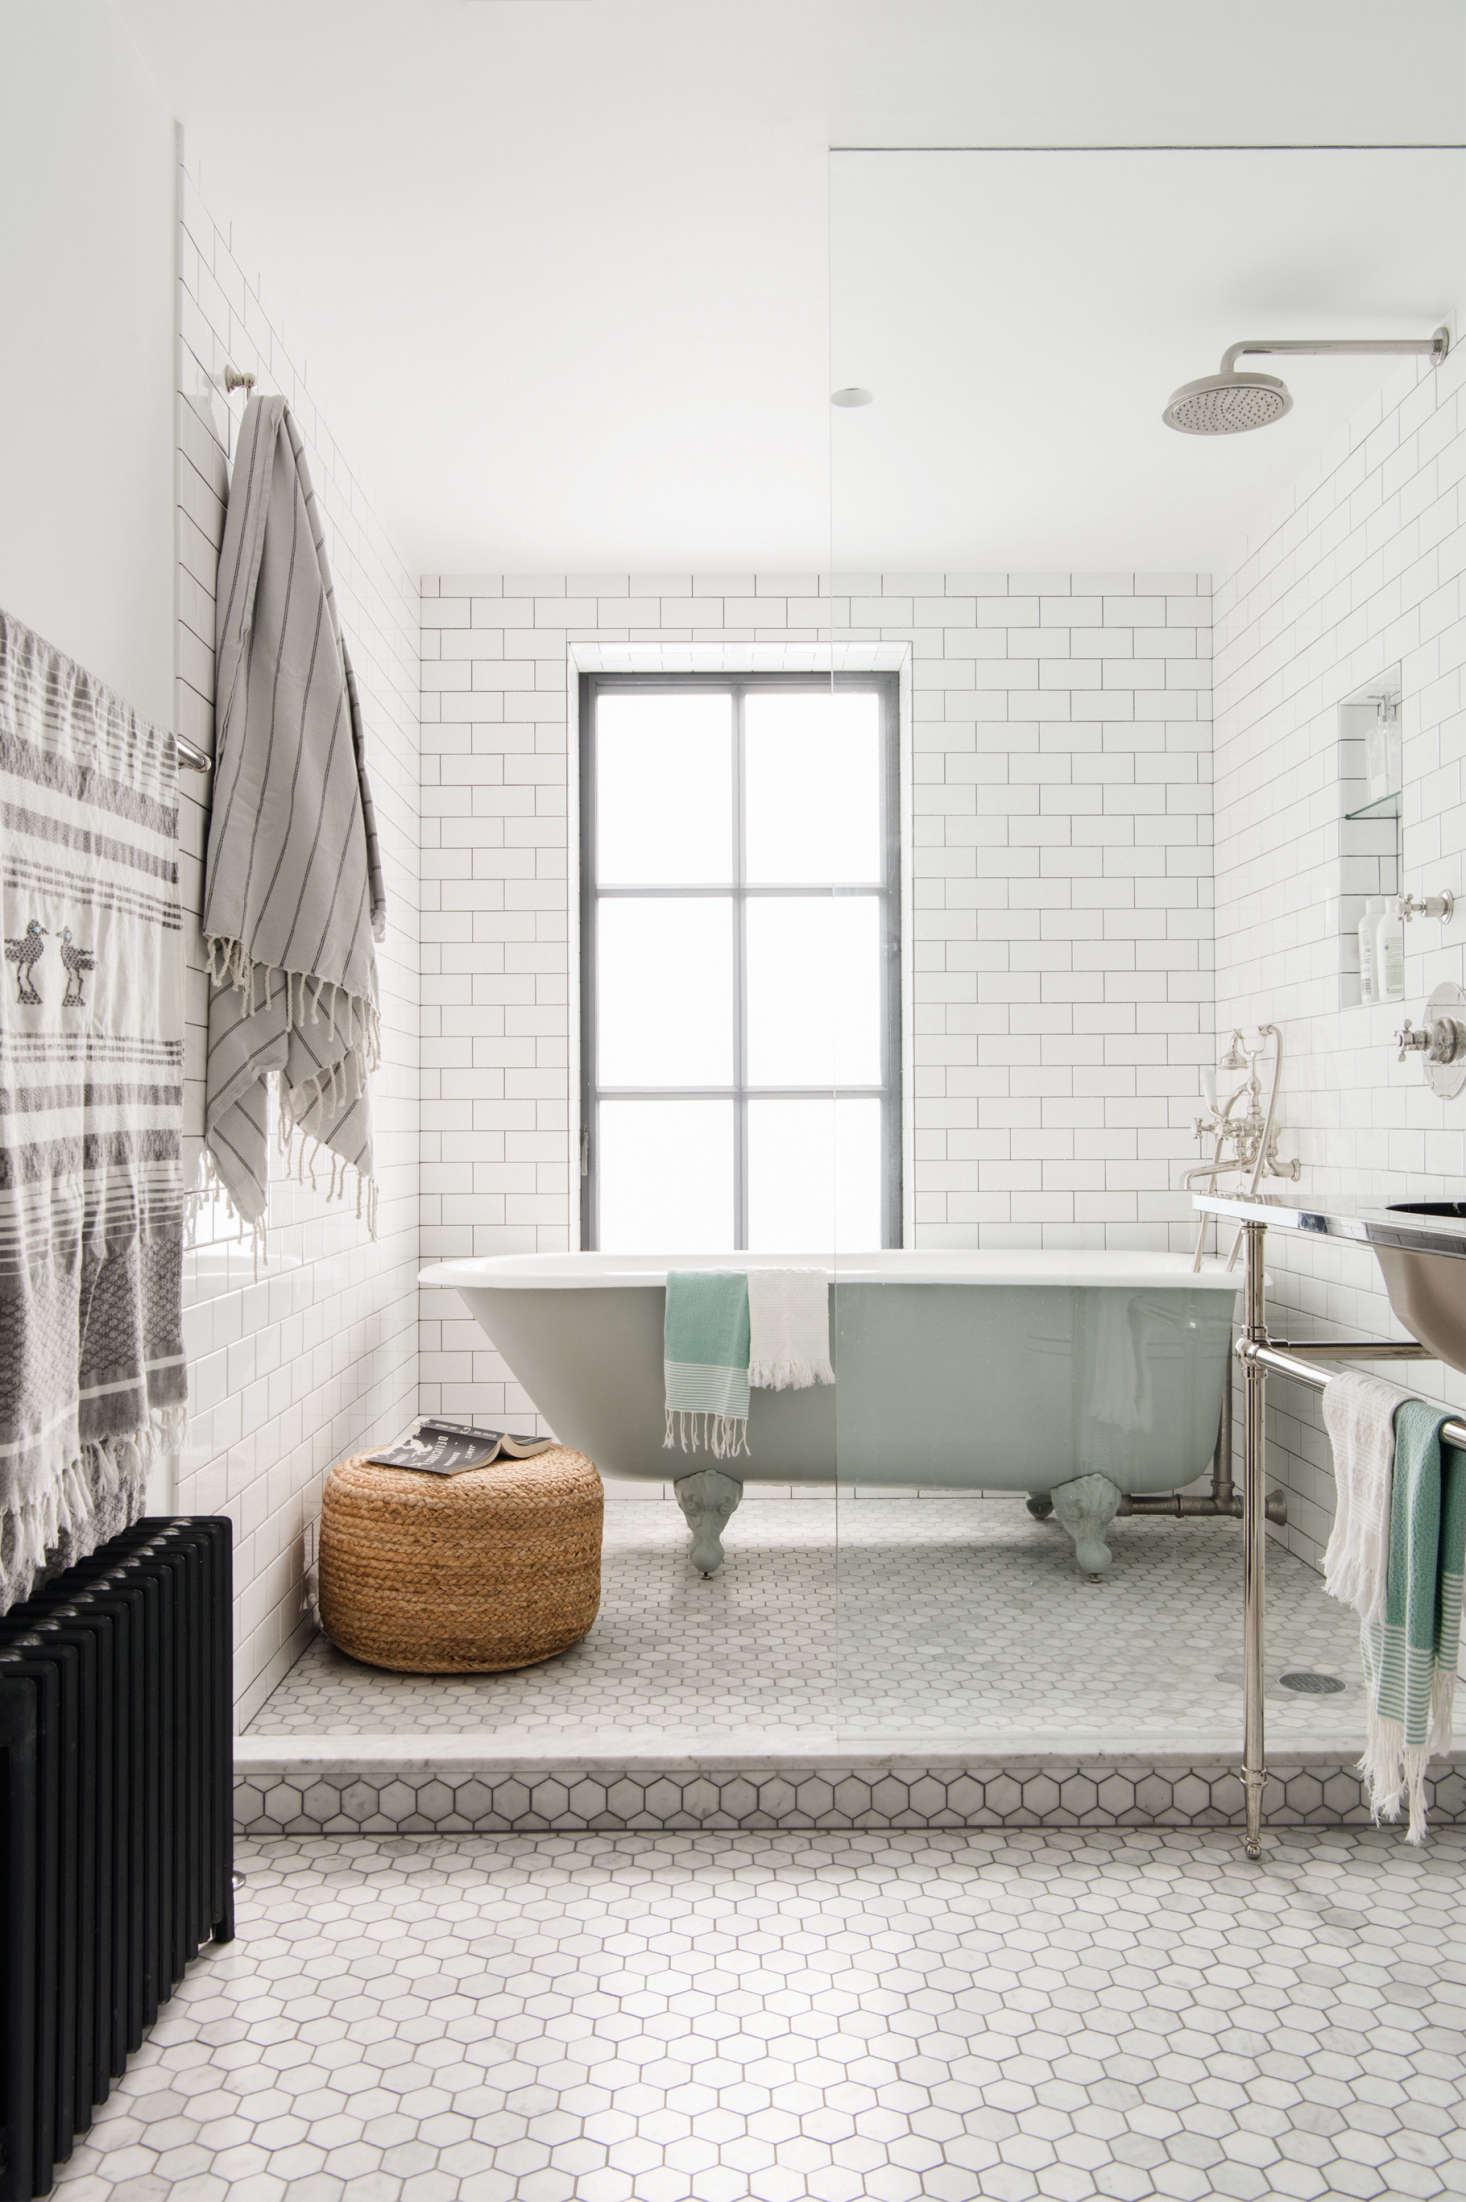 Bathroom Grout Remodeling 101 Everything You Always Wanted To Know About Grout